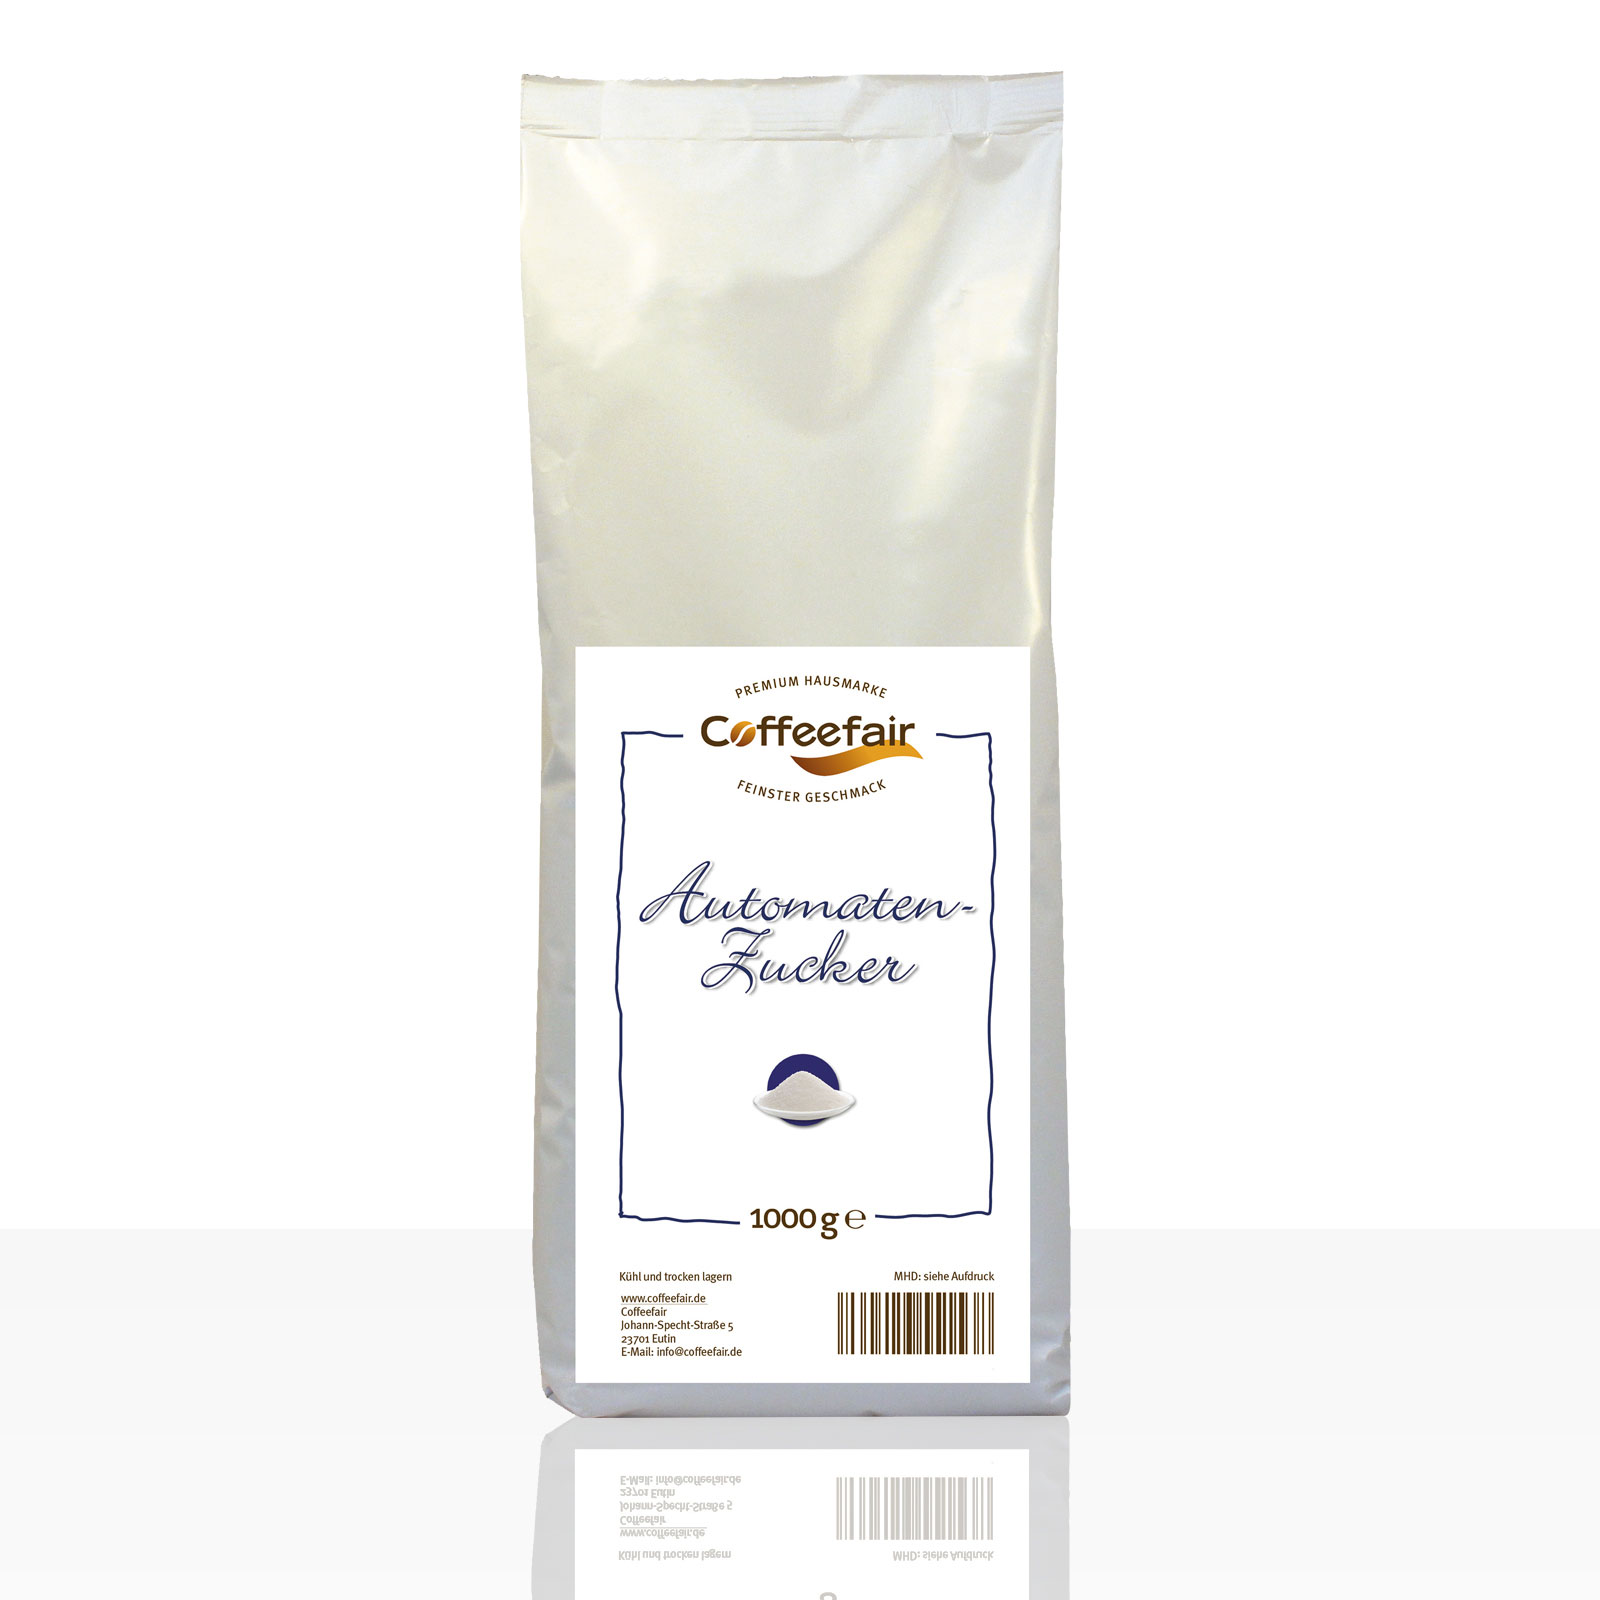 Coffeefair Automatenzucker 10 x 1kg, Feinzucker